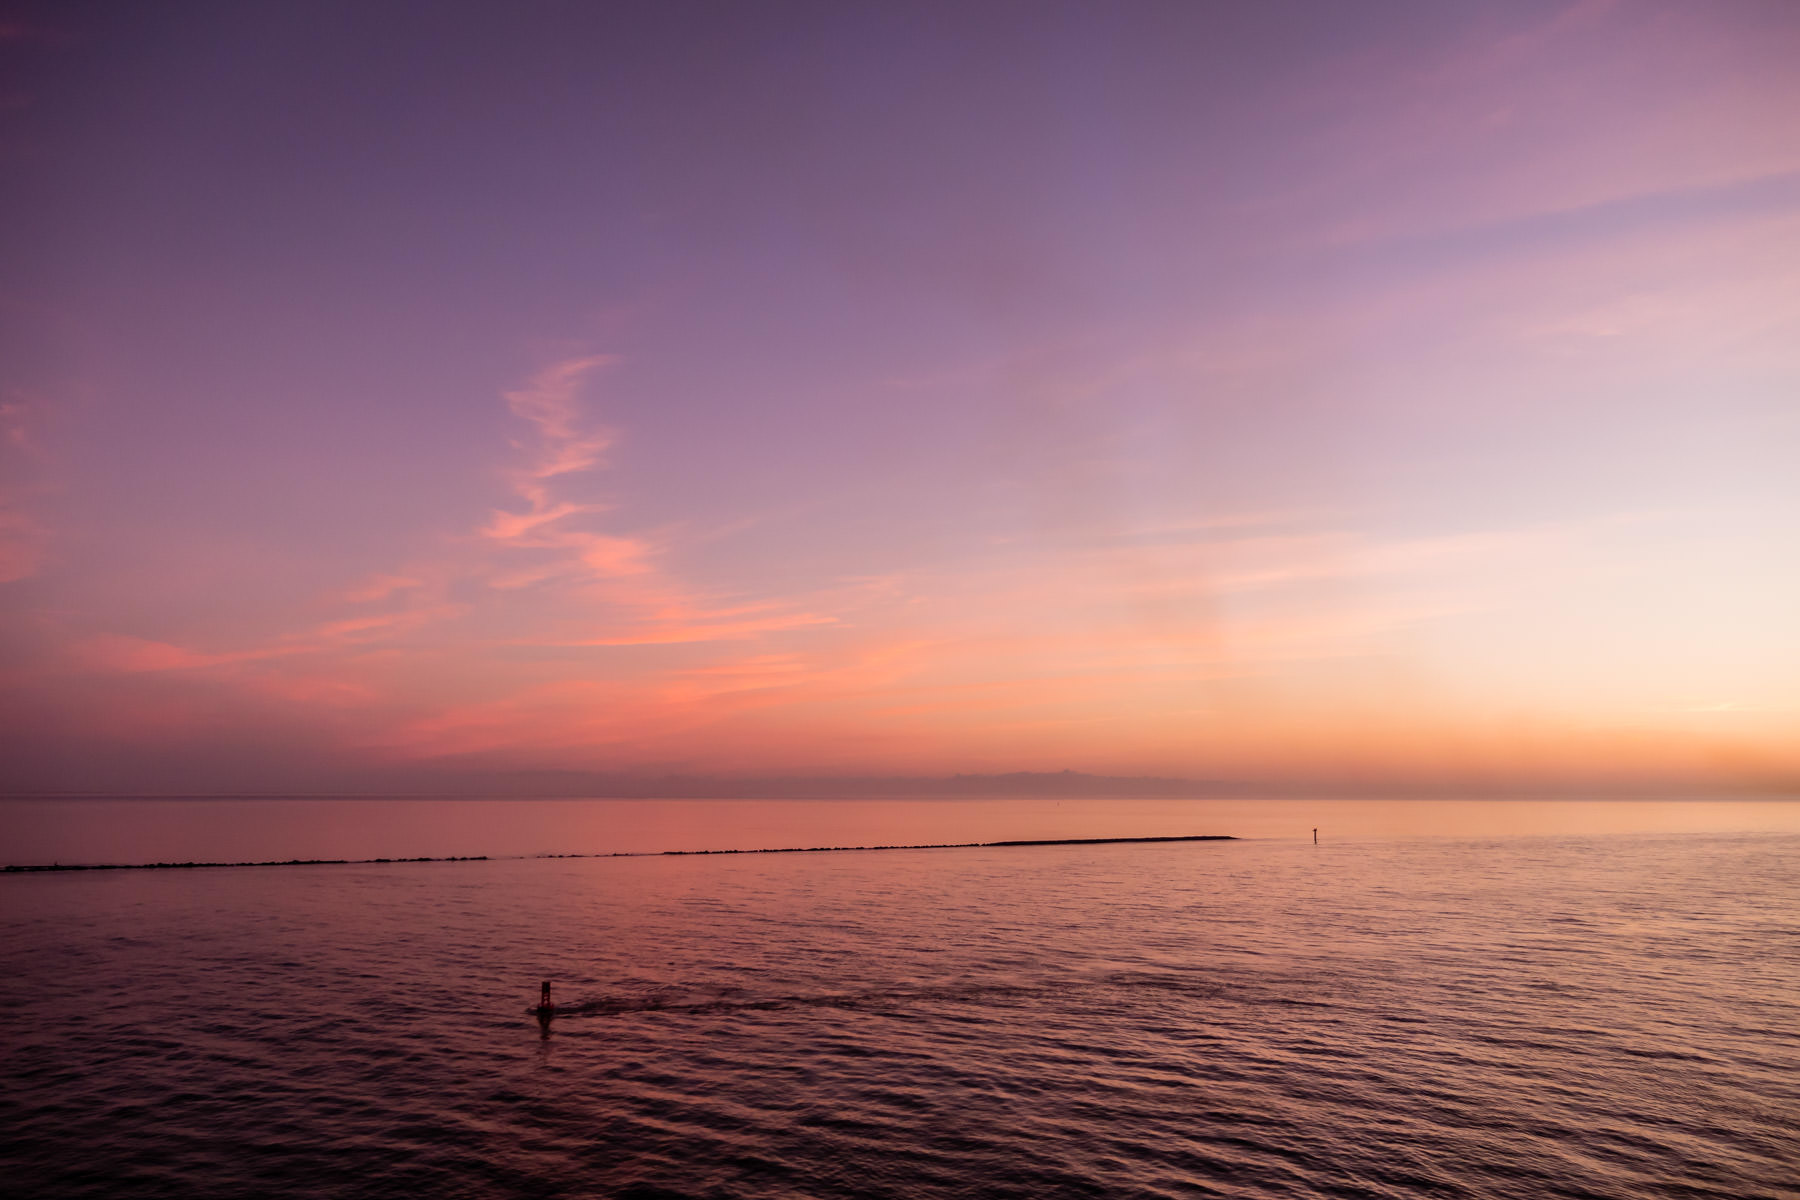 Dawn opens on the north jetty at the entrance to Galveston Bay and the Houston Ship Channel, Texas.